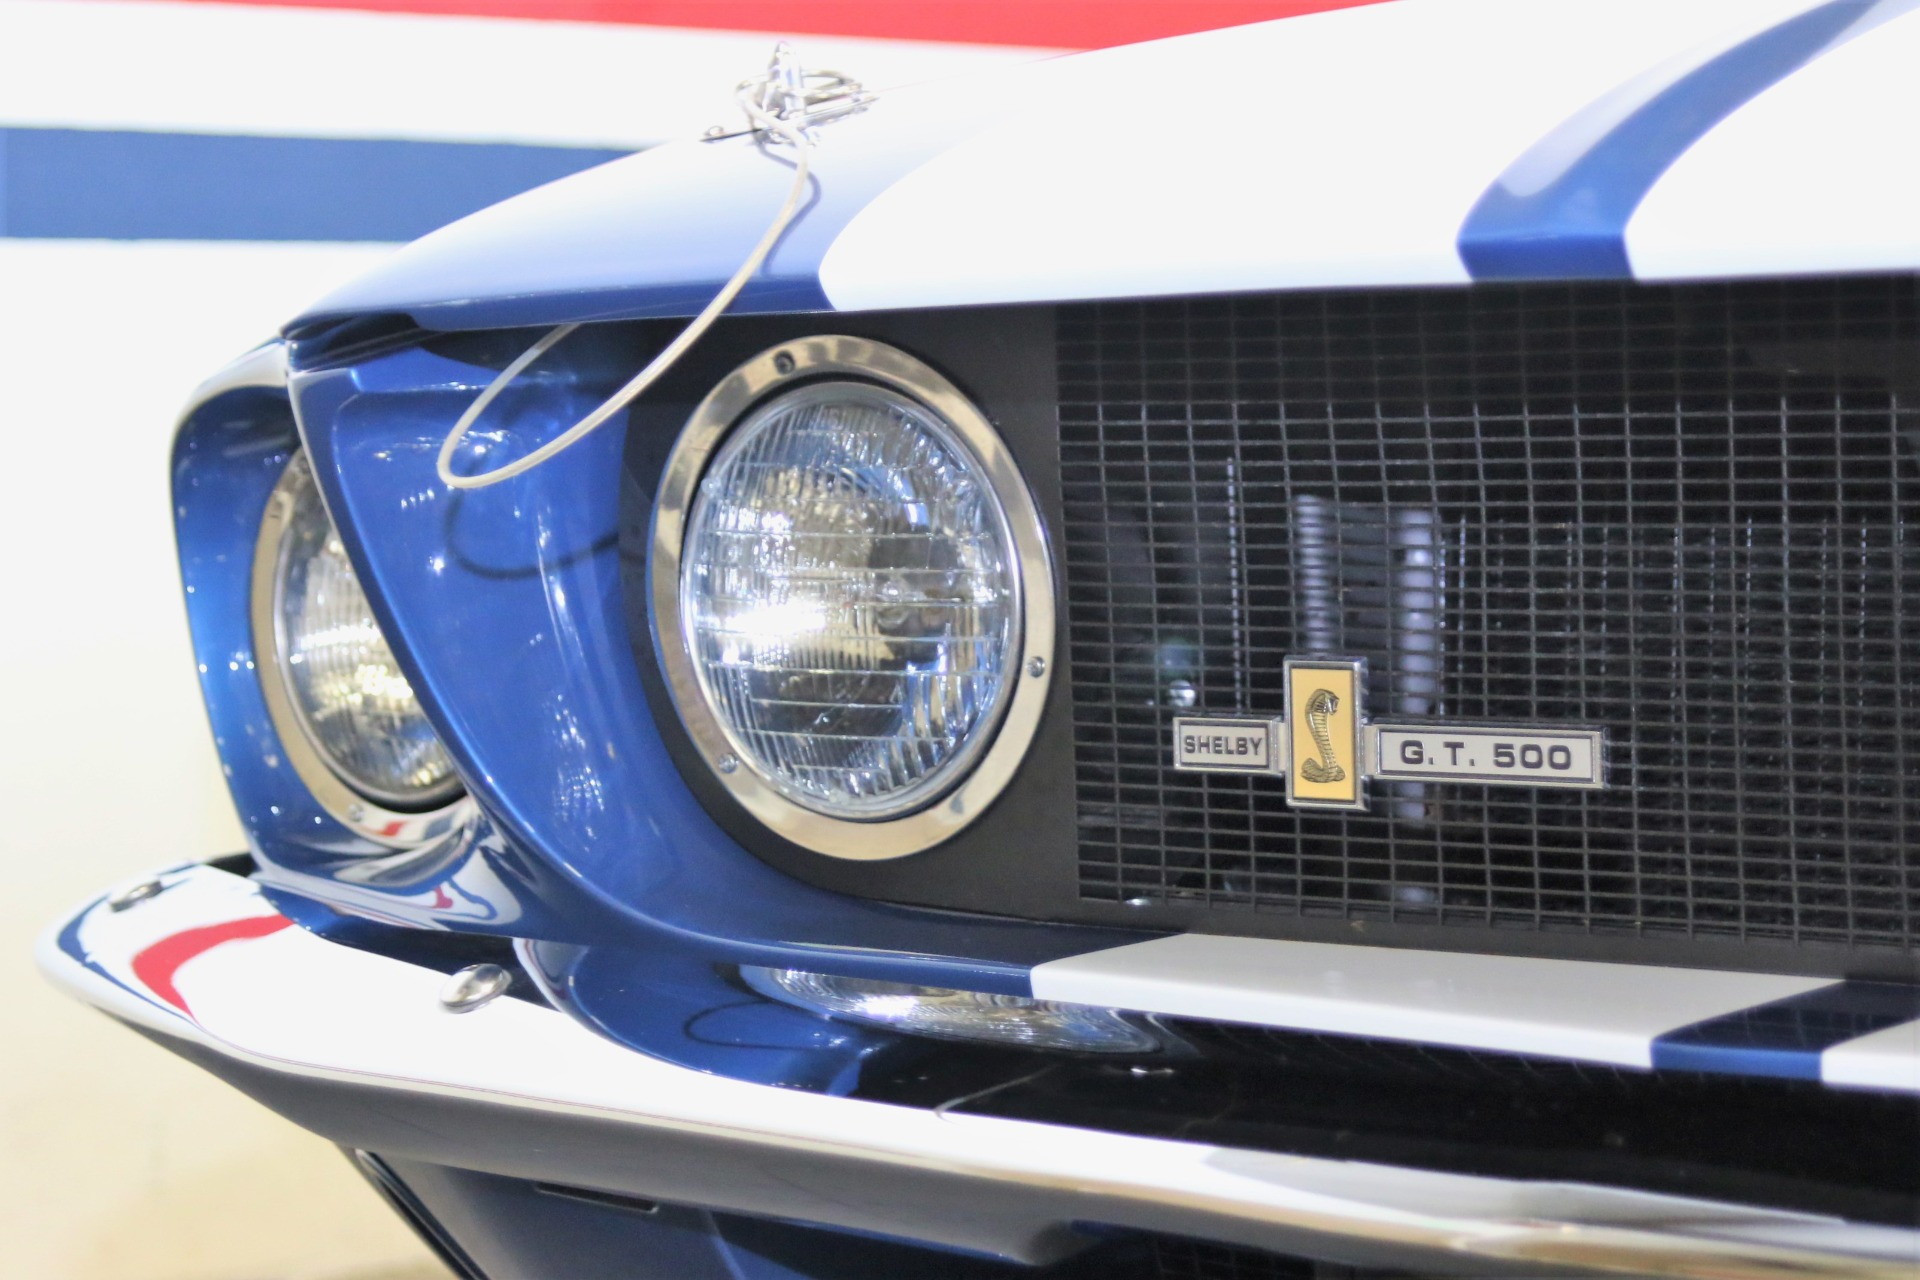 Used-1967-Shelby-GT-500